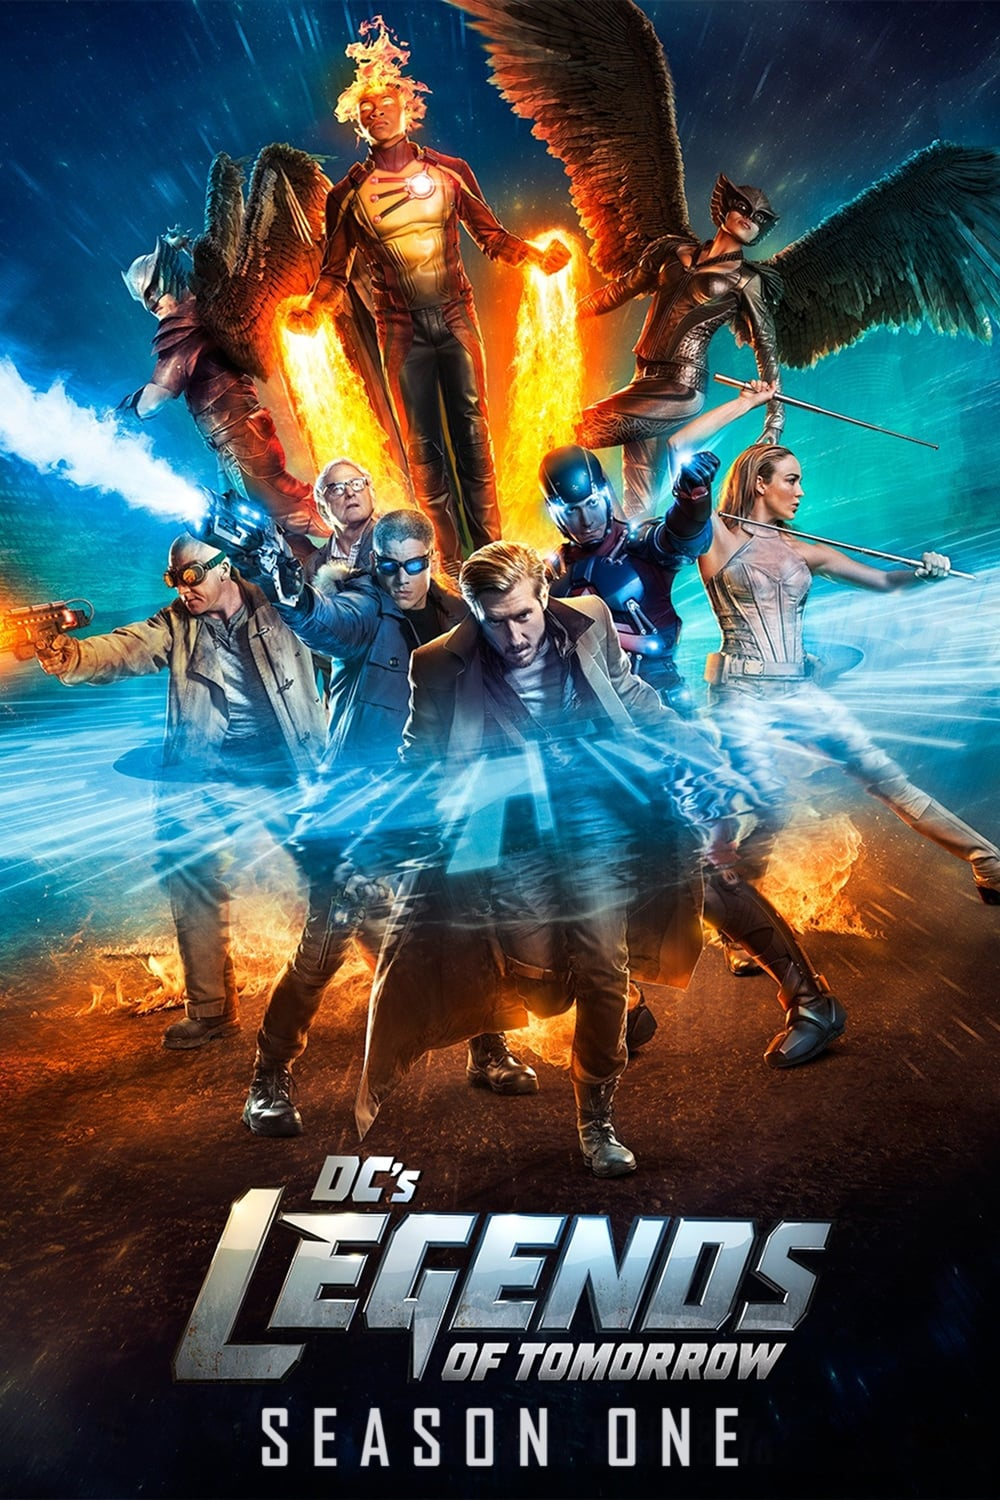 Legends of Tomorrow Season 1